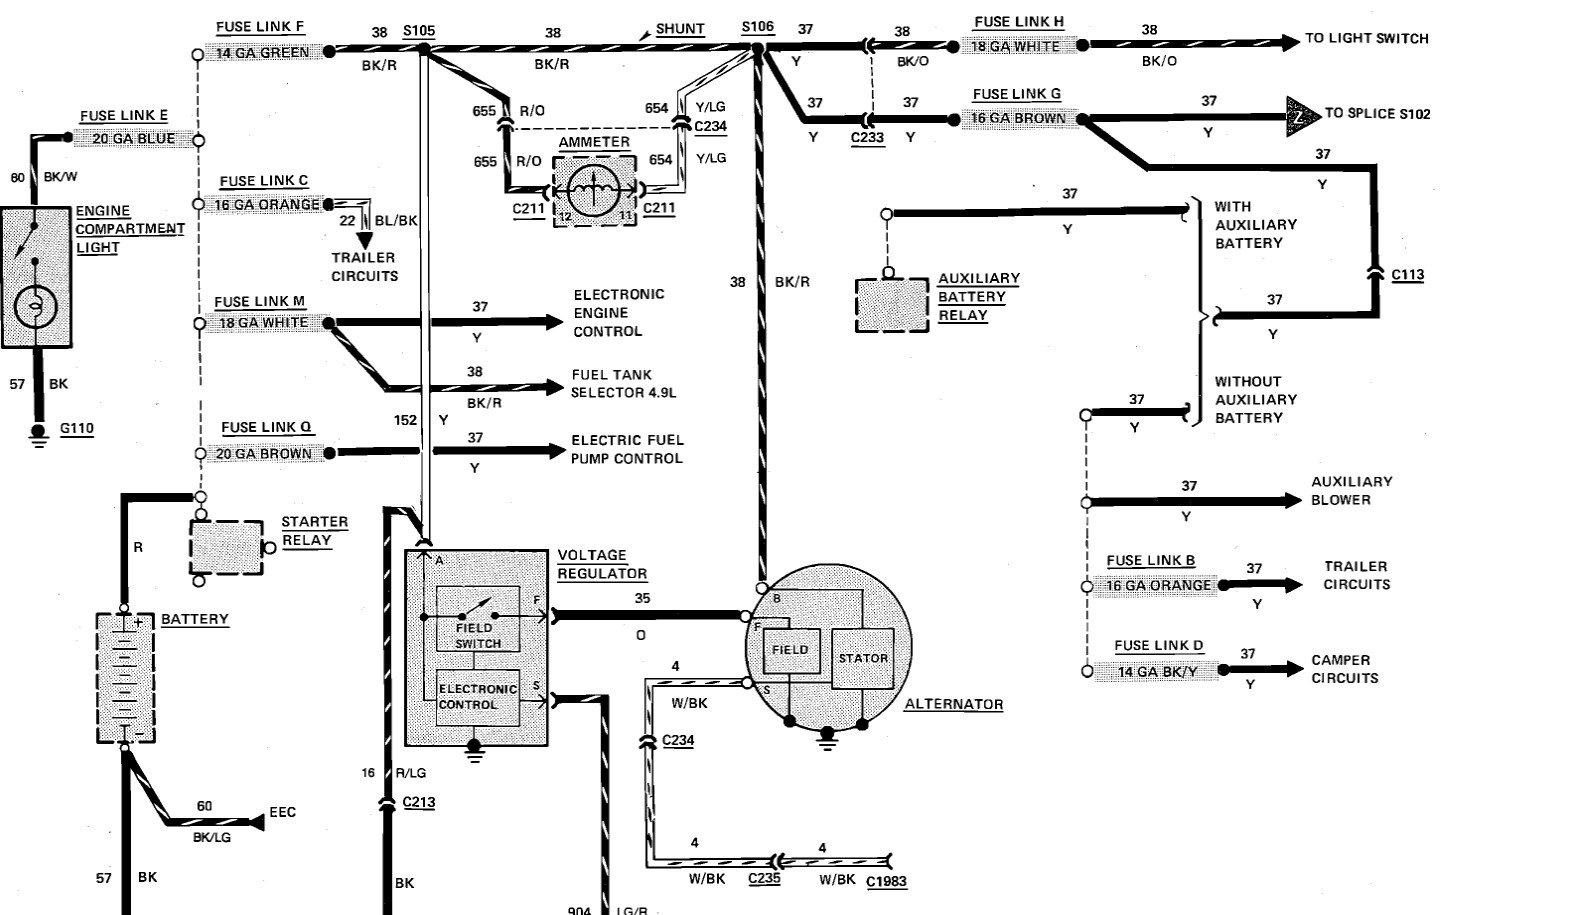 1987 ford e150 wiring diagram 1987 ford 350 wiring schematics diagrams | wiring library 2005 ford e150 wiring diagram schematic